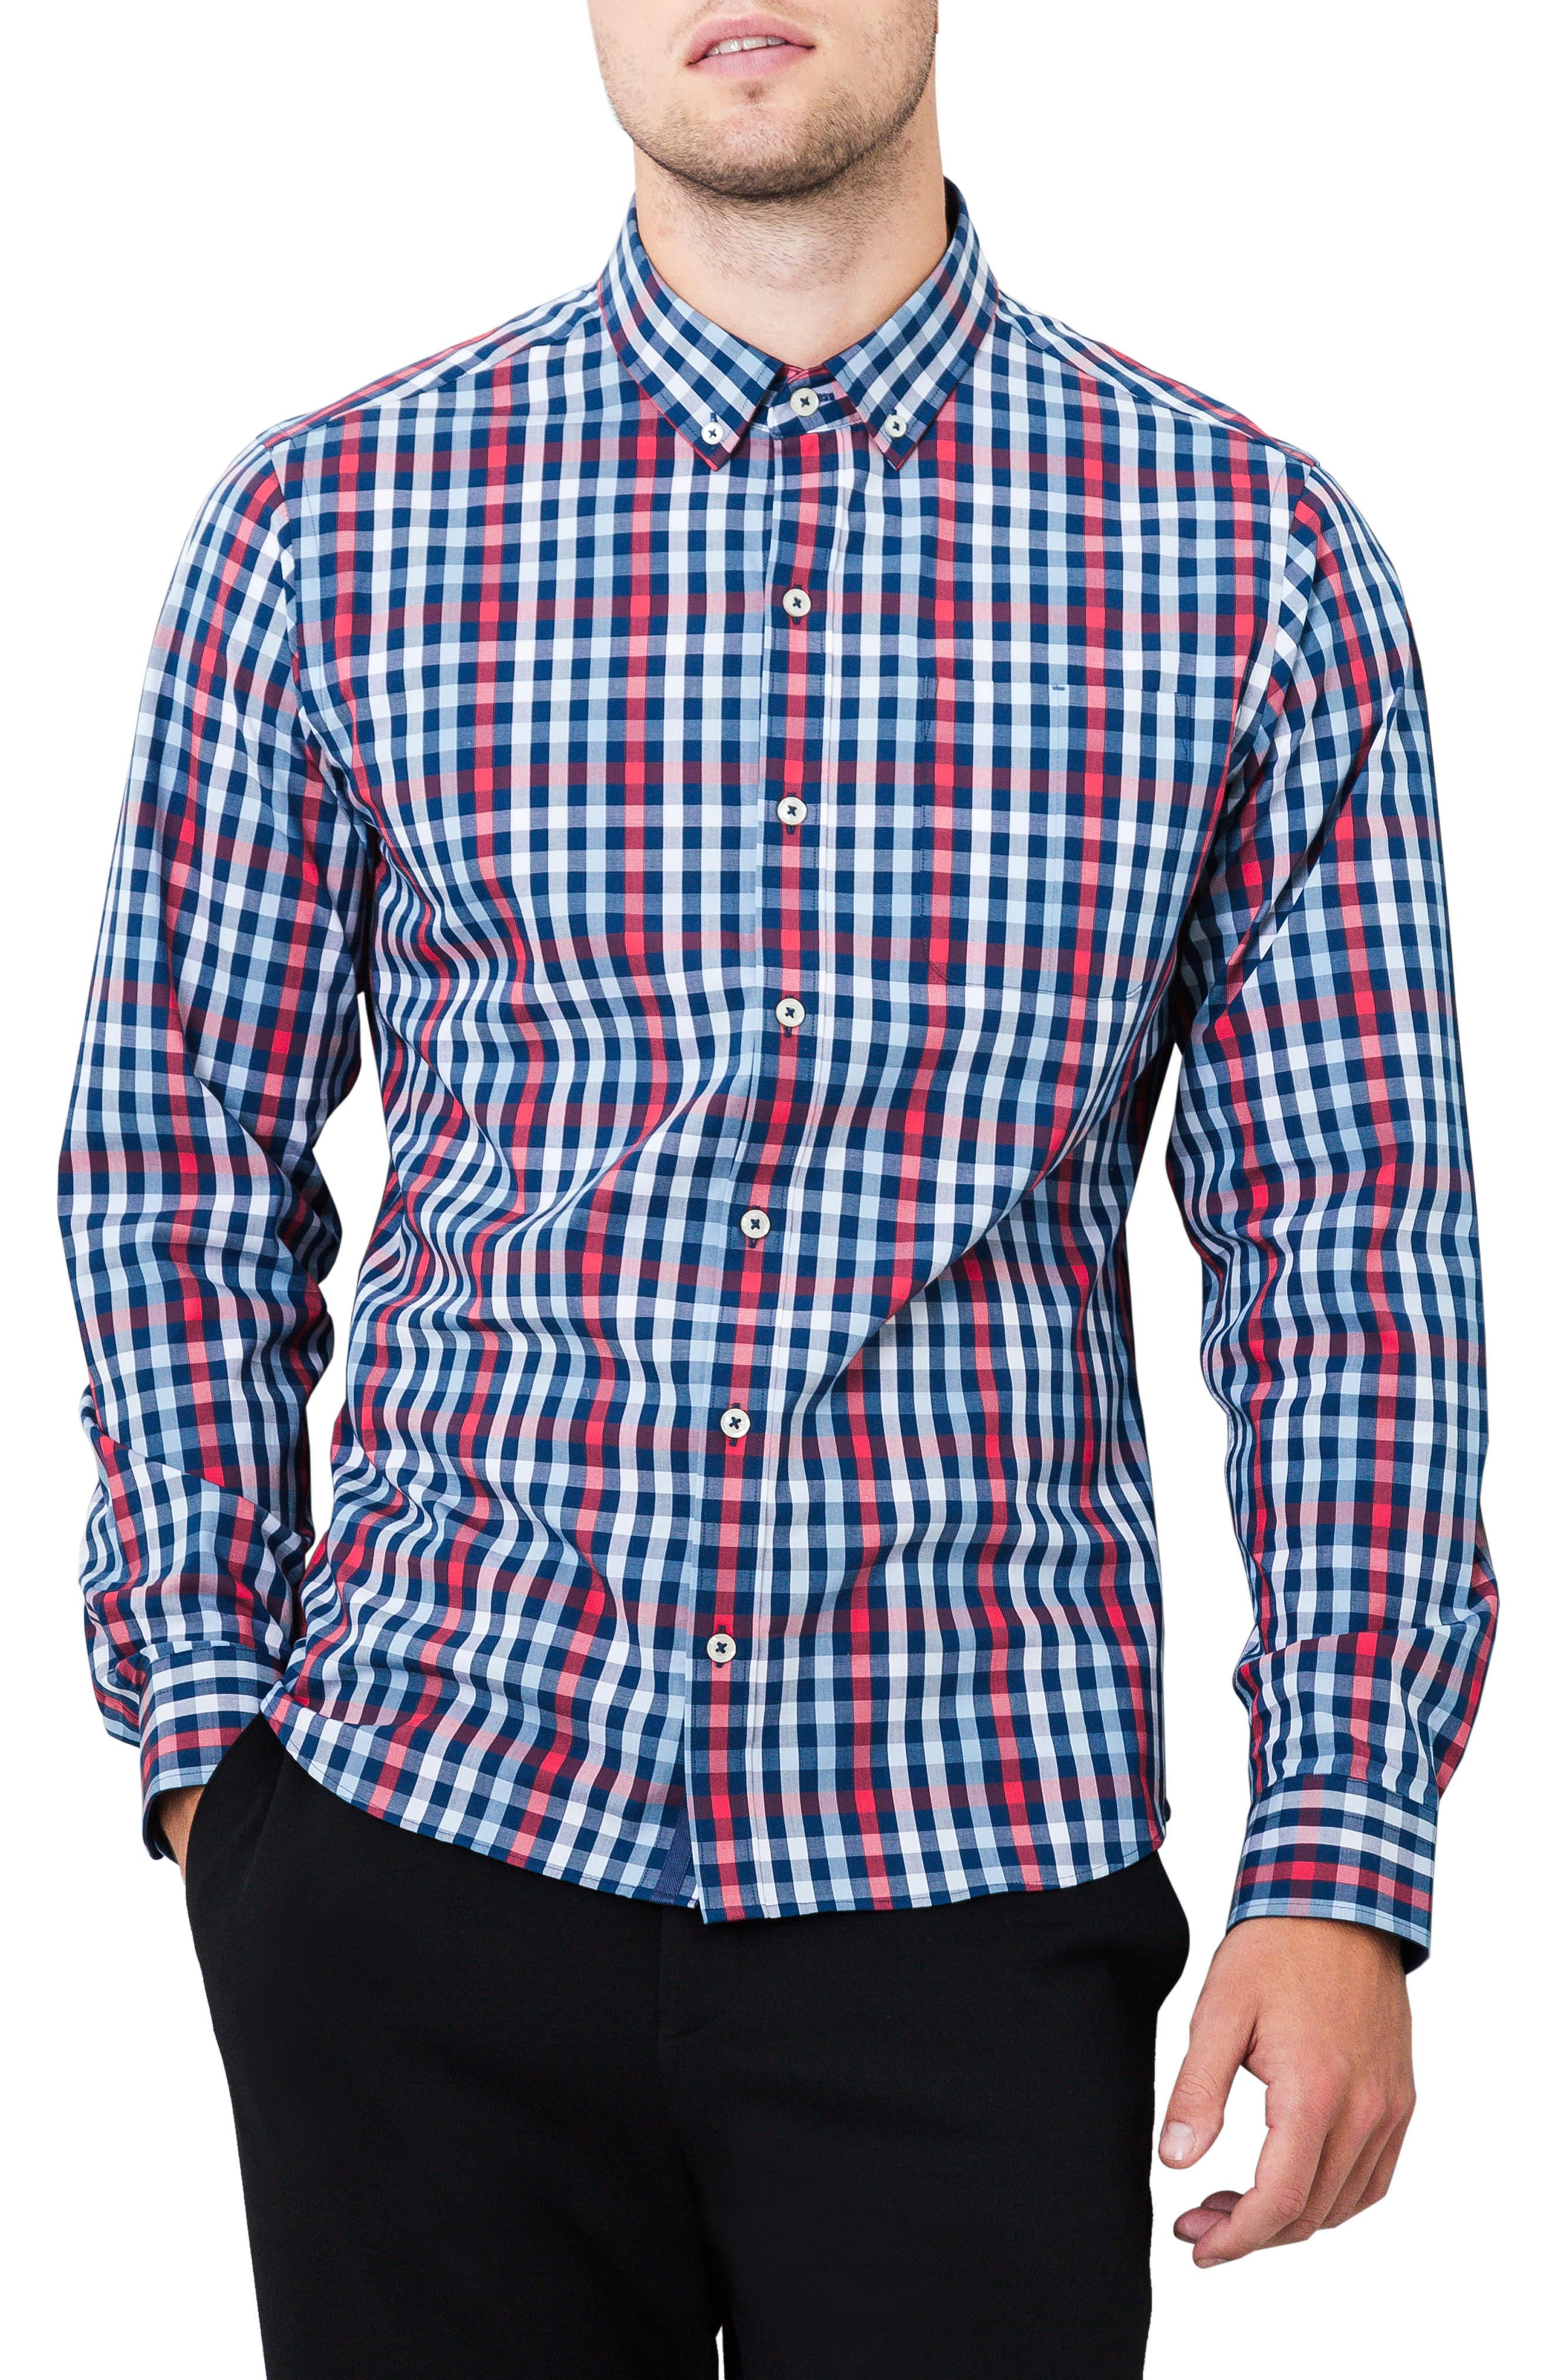 Year One Woven Shirt,                         Main,                         color, Navy